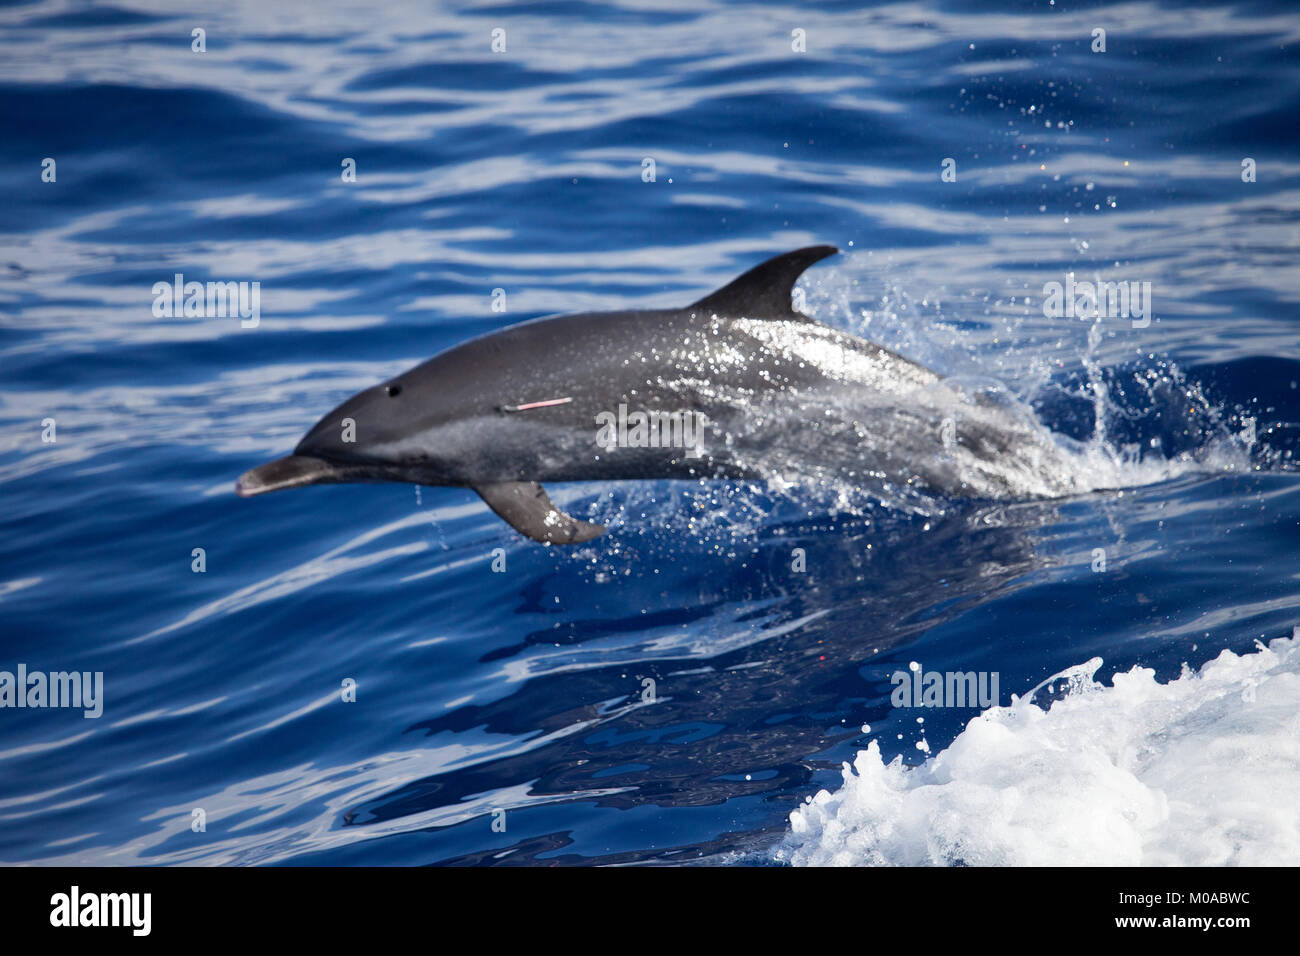 Leaping Dolphin - Stock Image